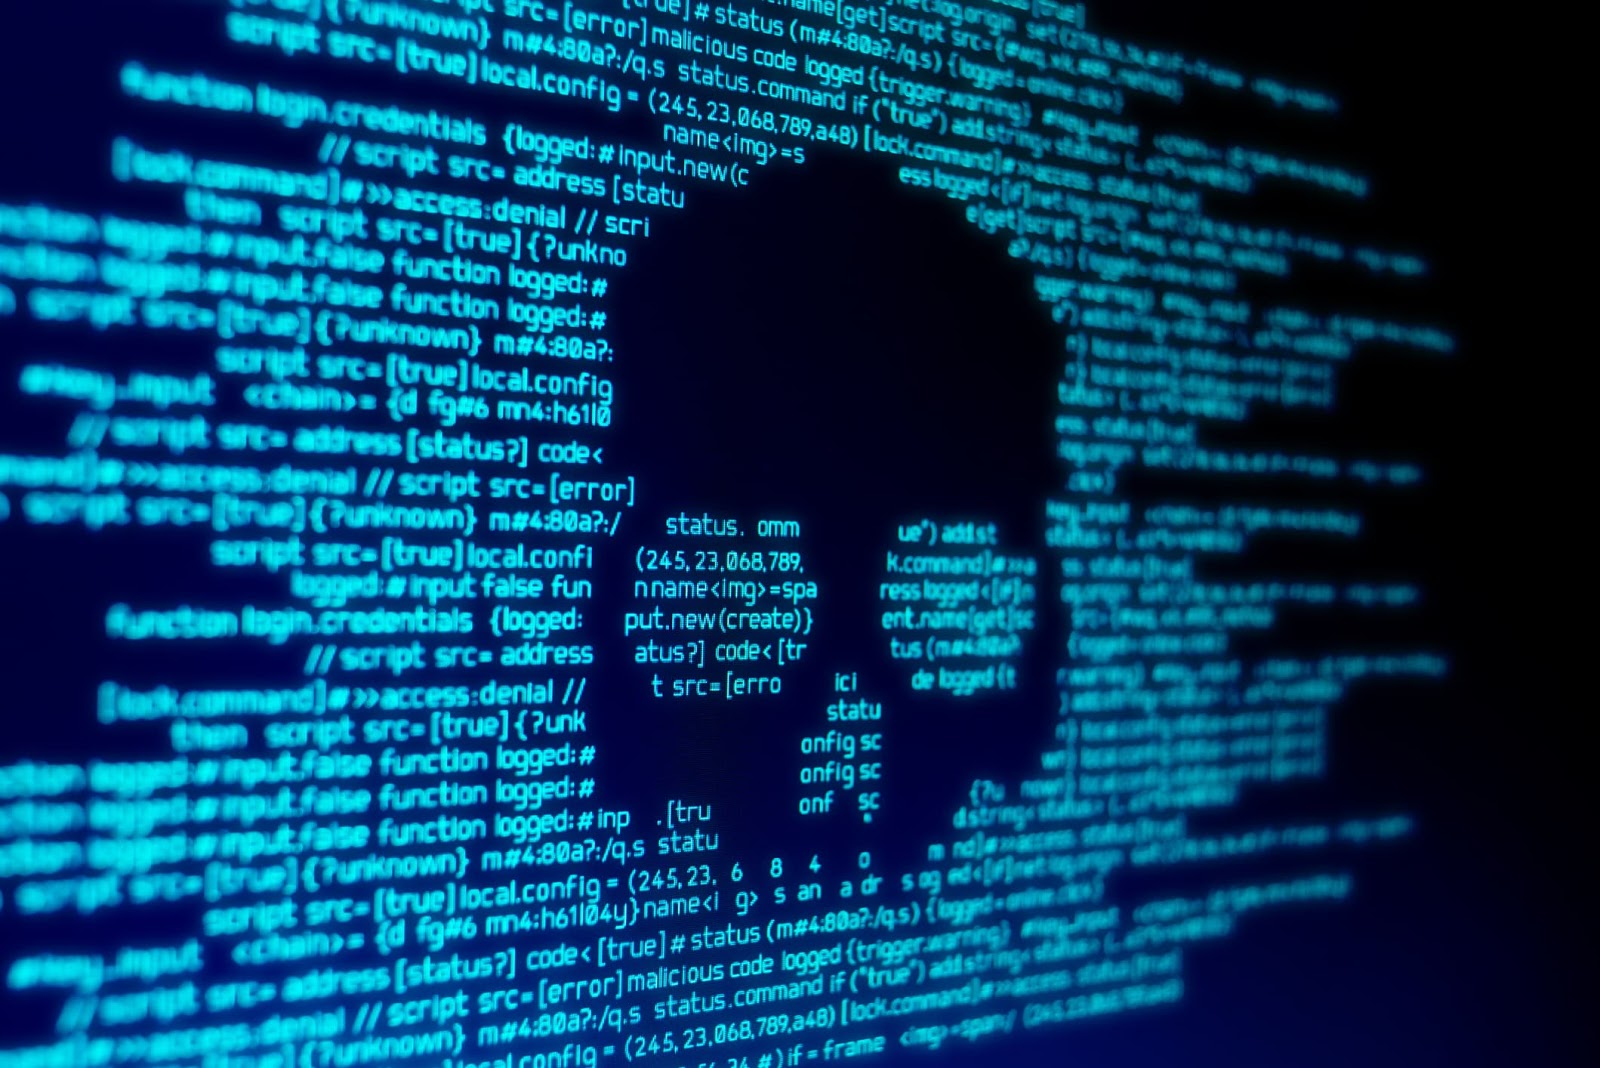 Outline of a skull in computer code, symbolizing how to prevent computer viruses.